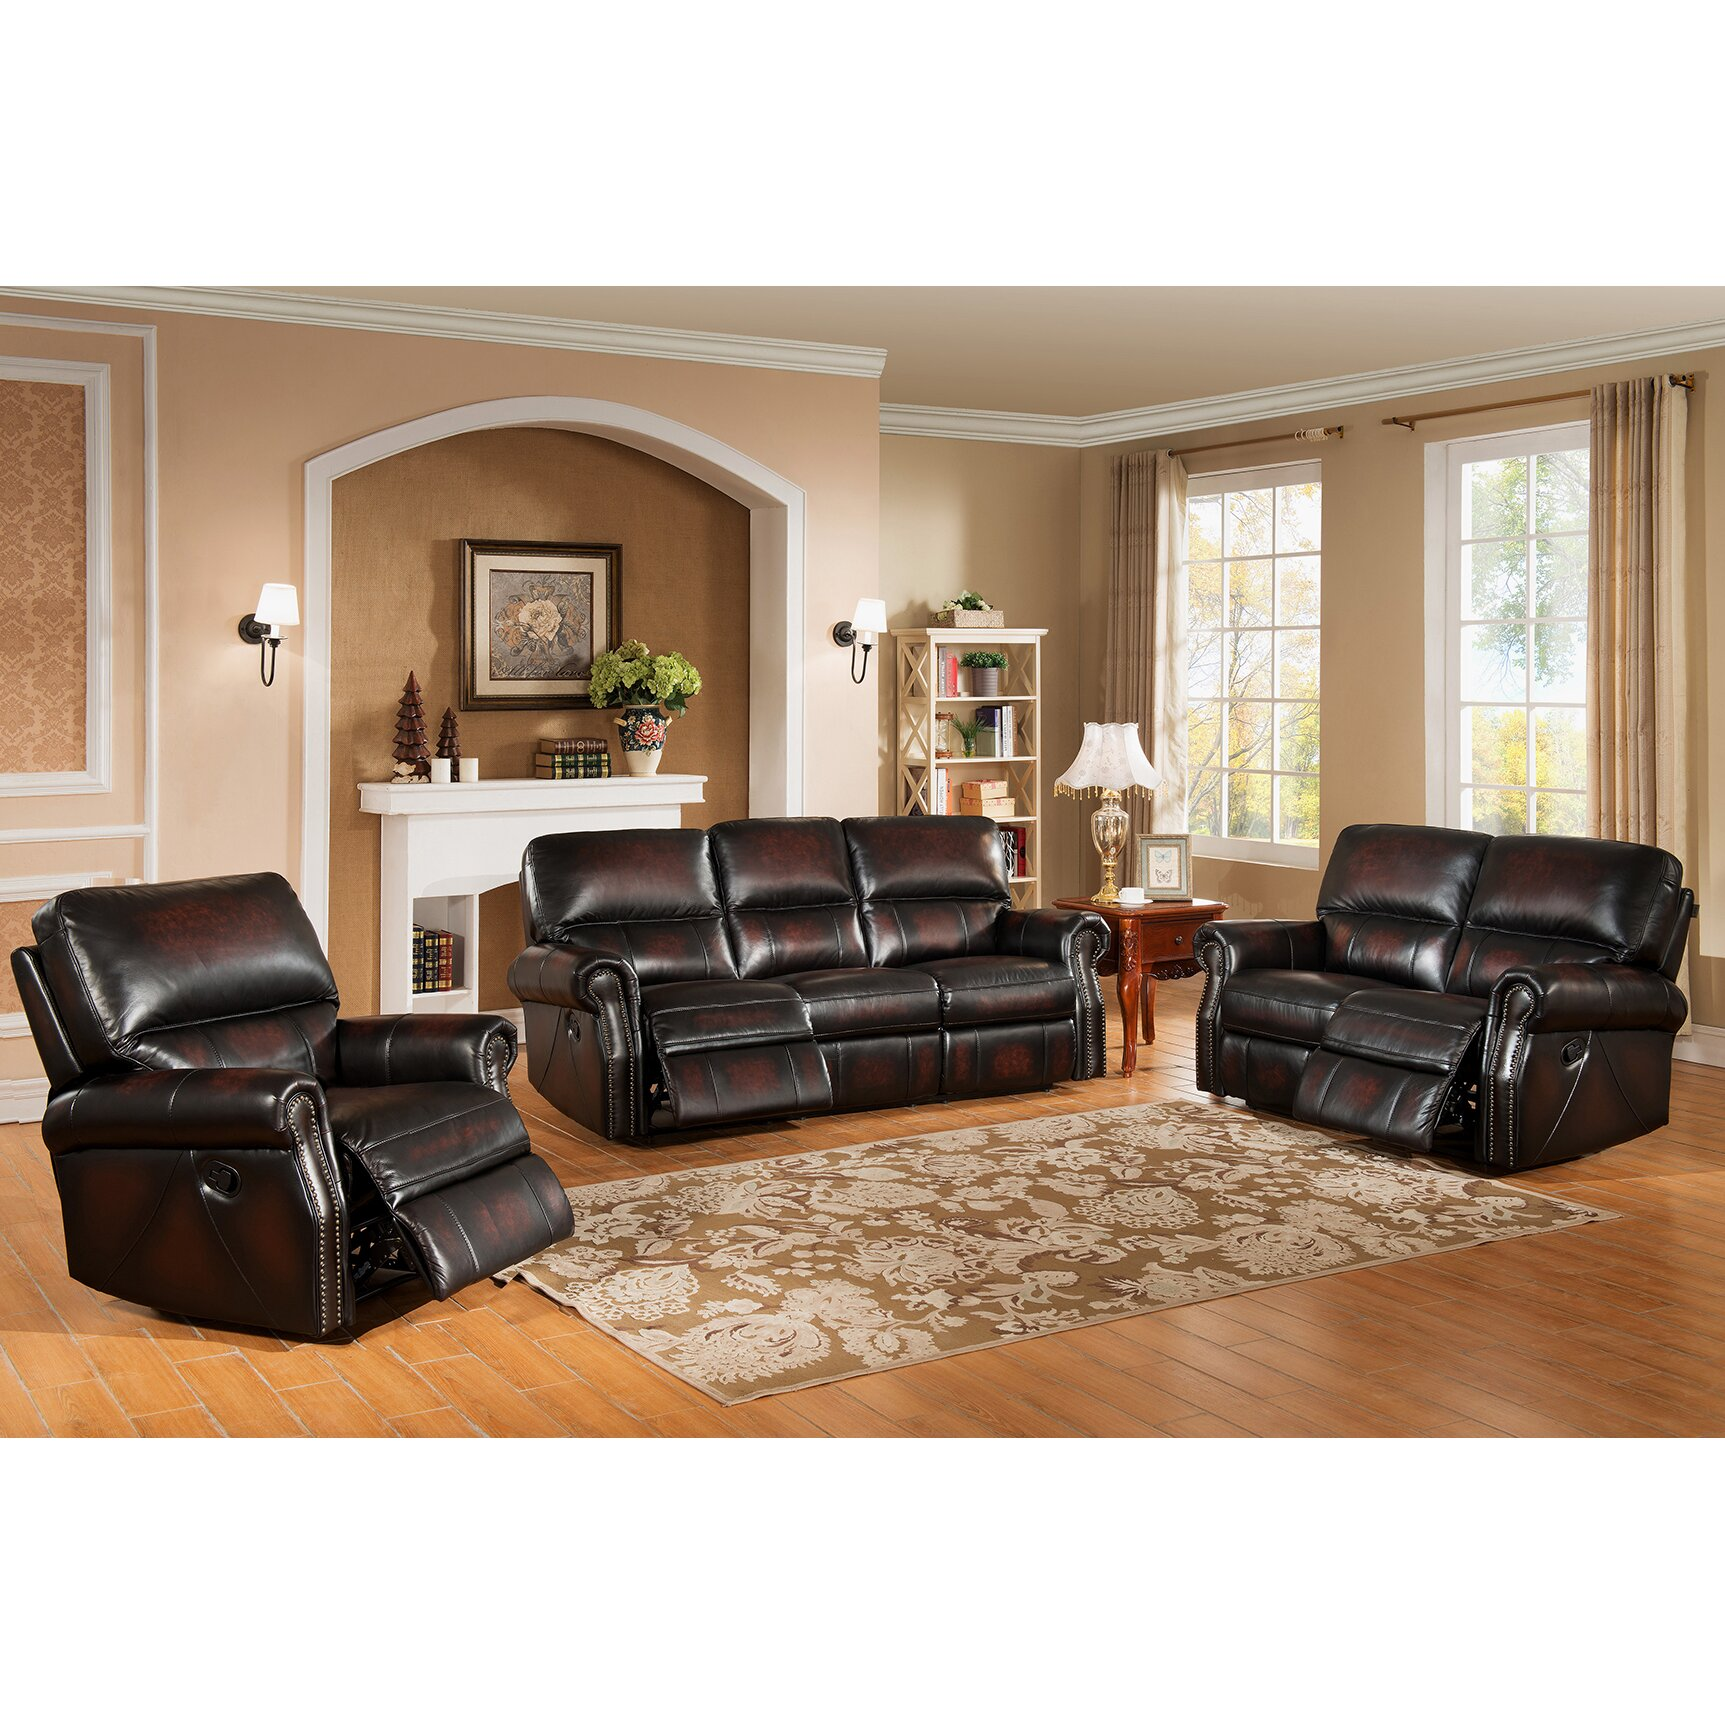 Amax nevada 3 piece leather living room set wayfair for Living room 3 piece sets